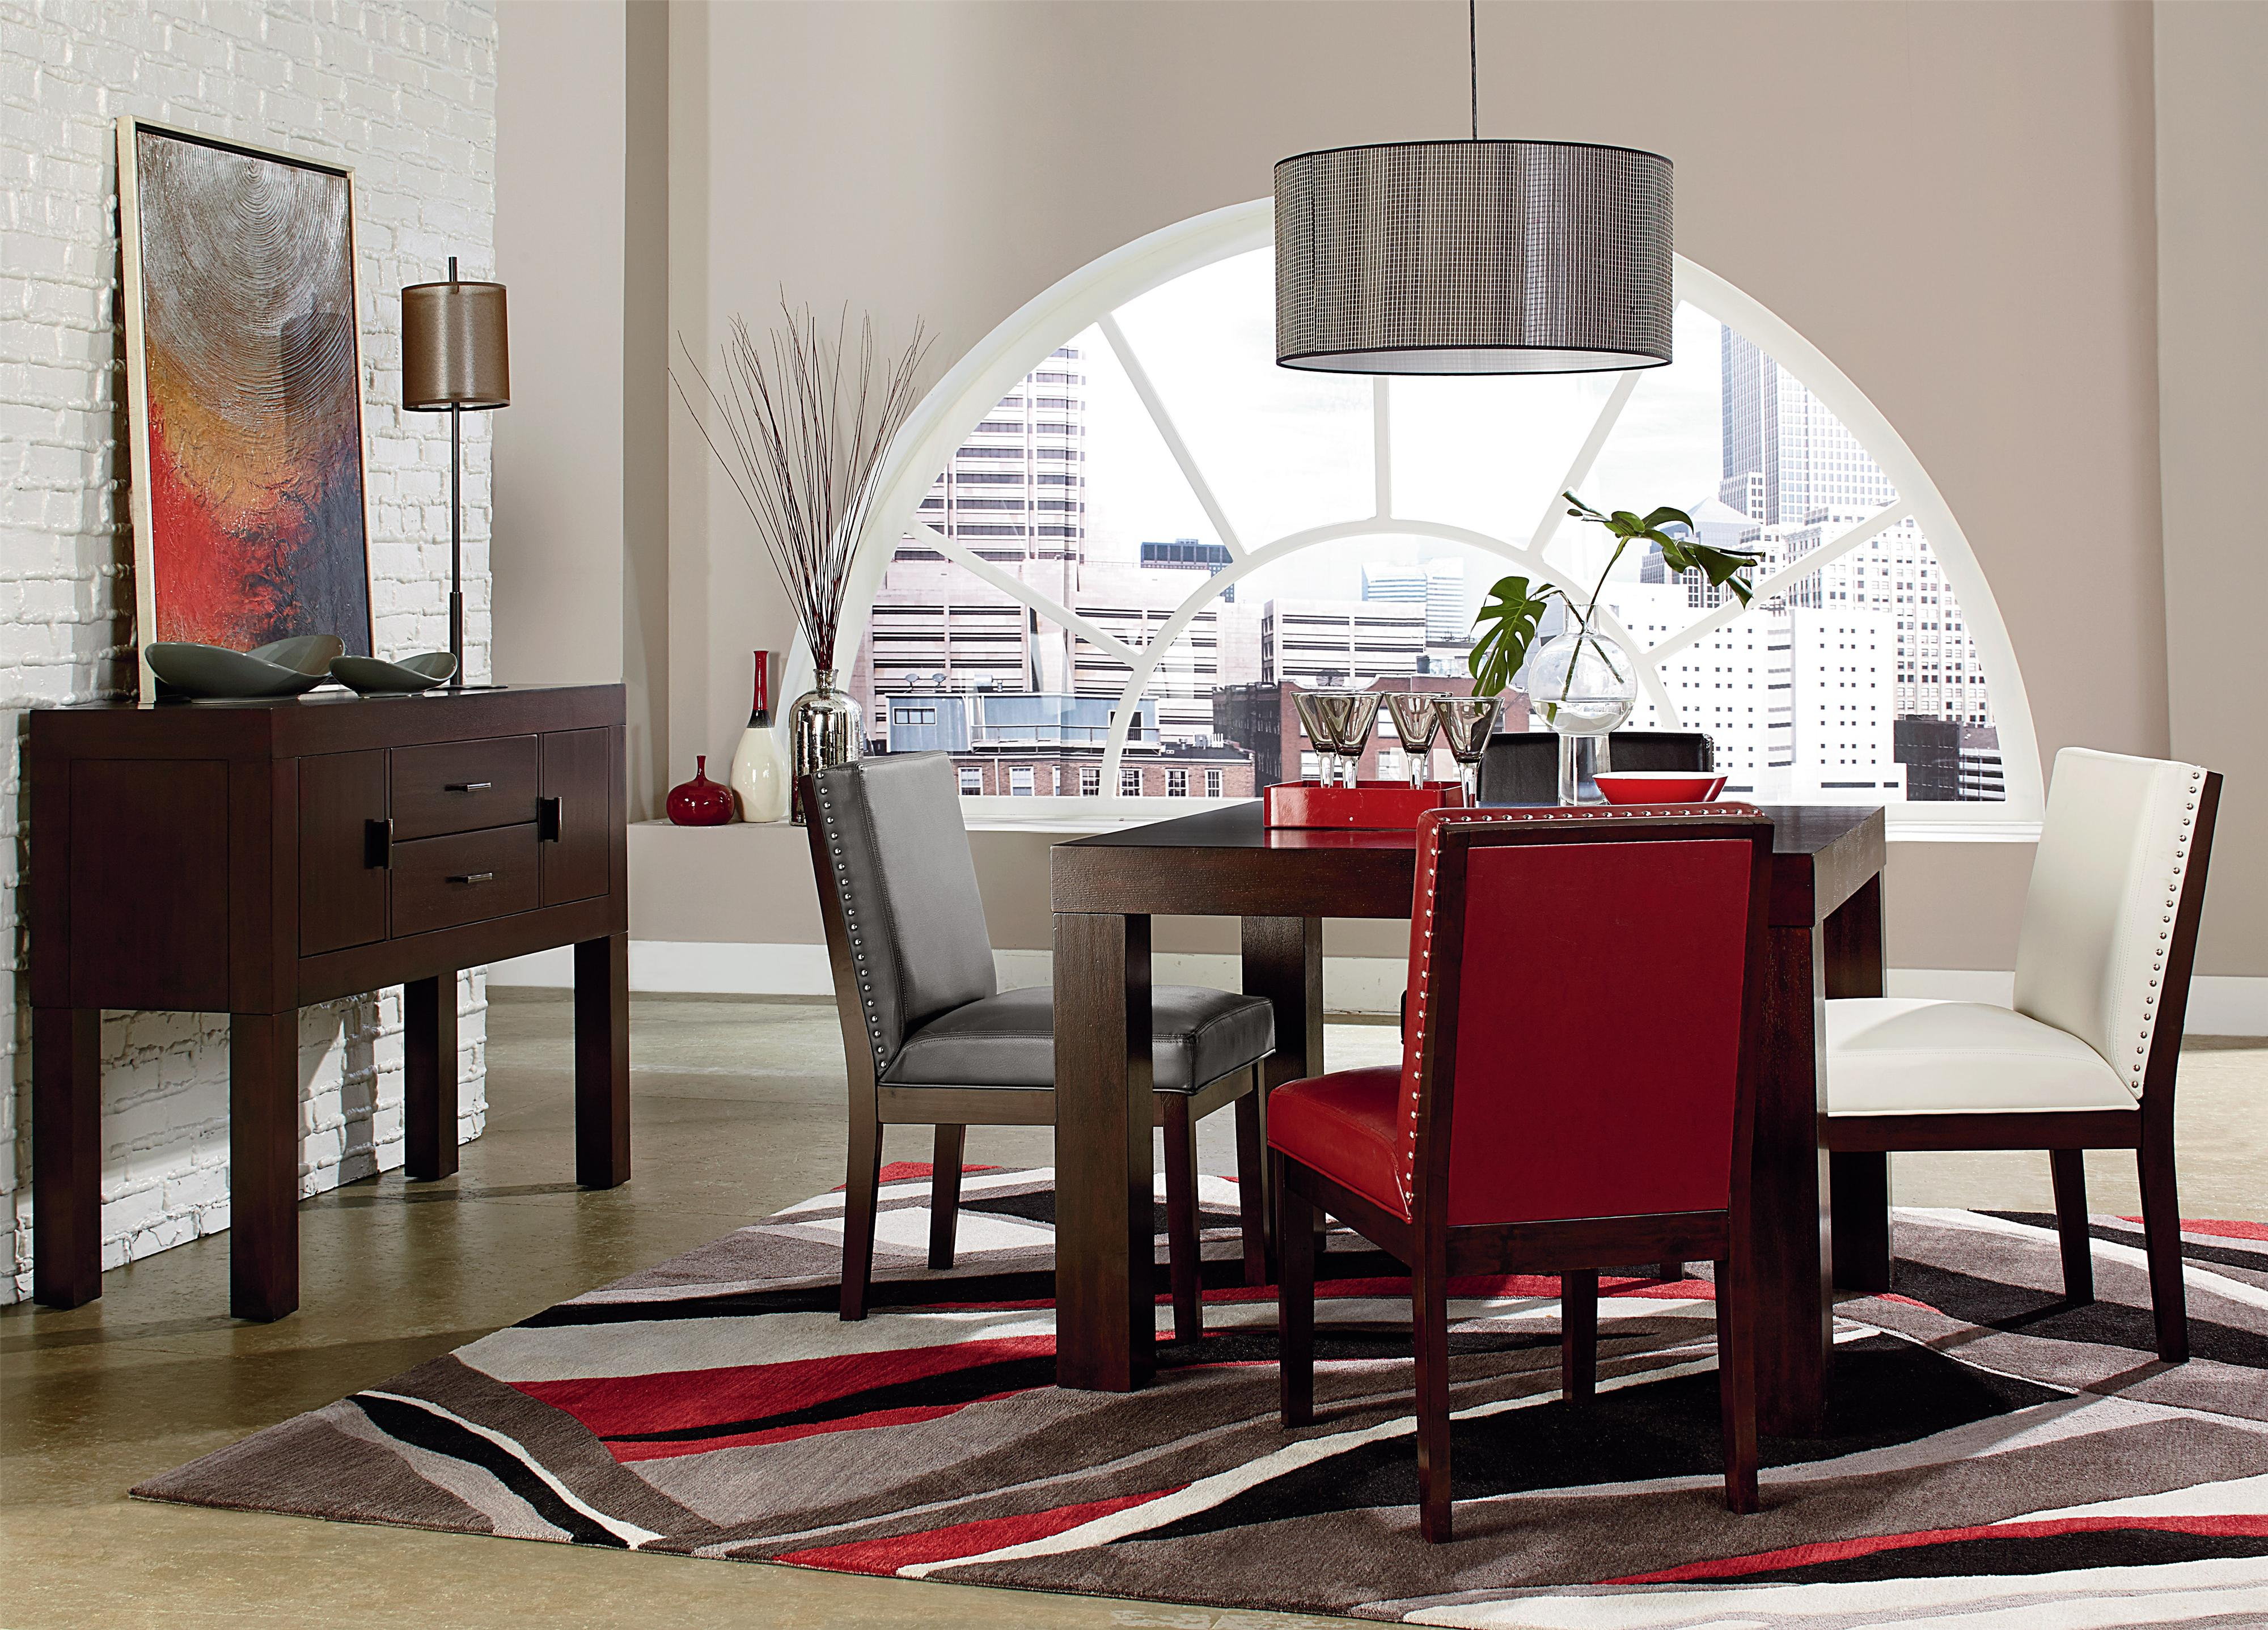 Standard Furniture Couture Elegance Dining Room Group - Item Number: 10560 Dining Room Group 1